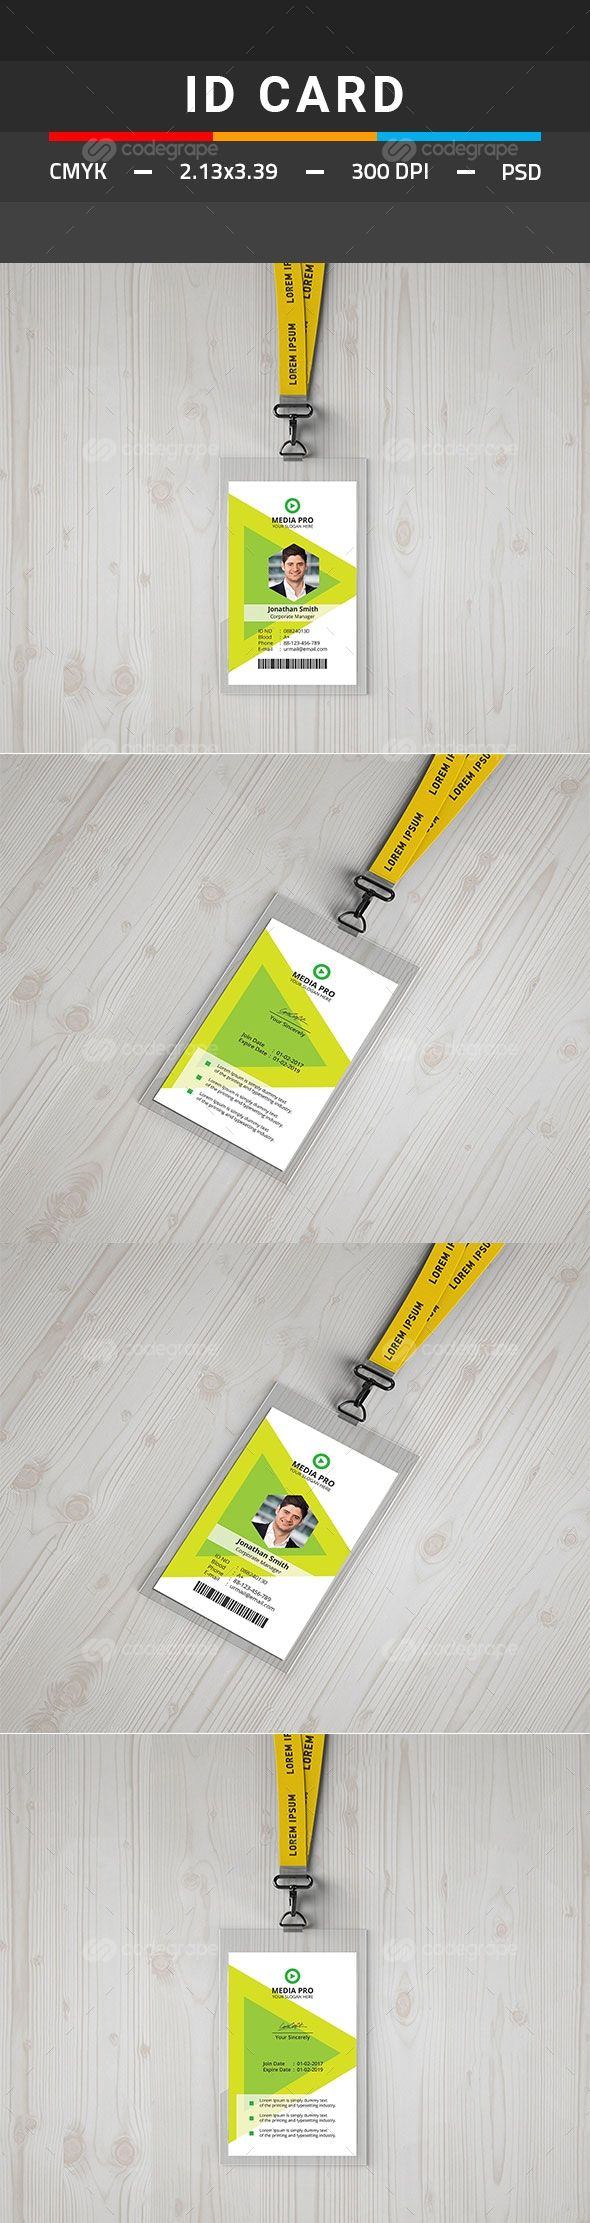 THIS IS A BUSINESS ID CARD TEMPLATE. This template download contains ...